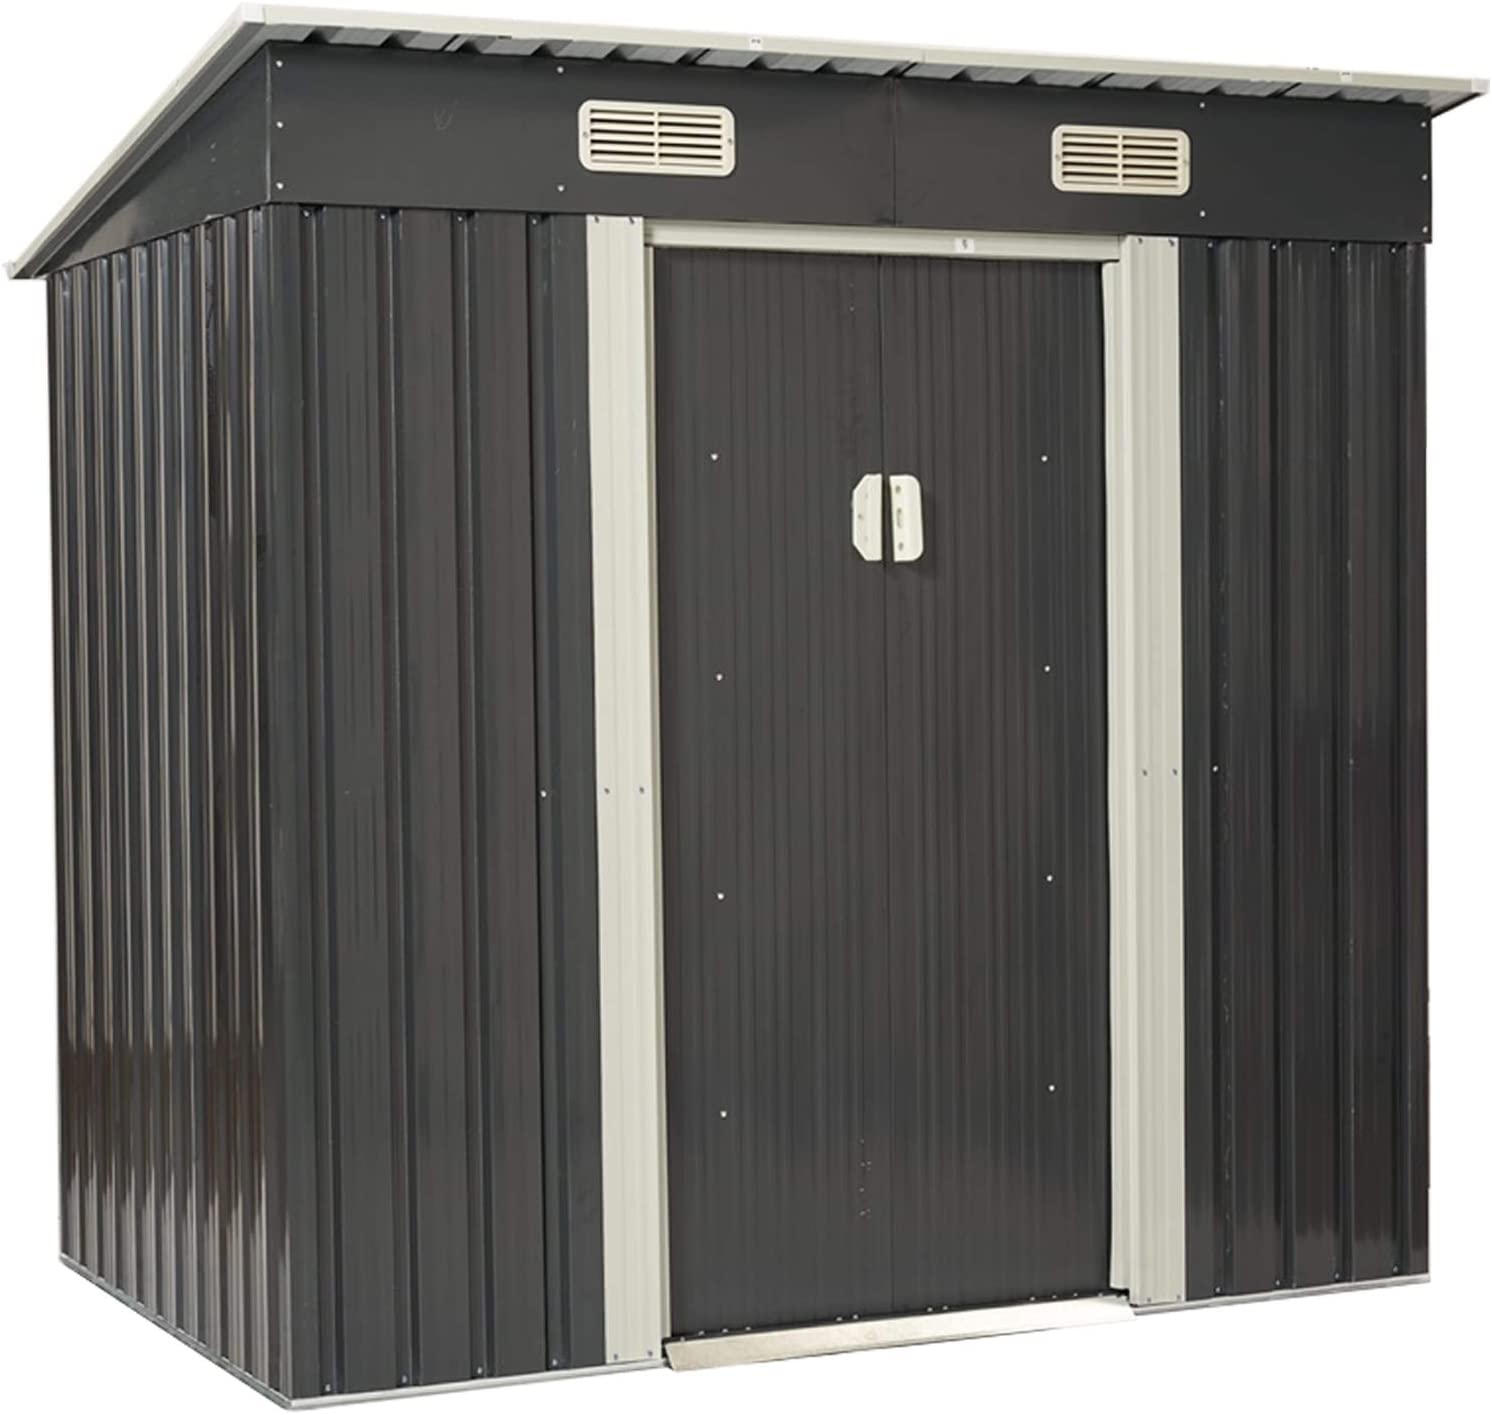 Oakmont Outdoor 4×6 Department store FT Storage Shed Seattle Mall wi Garden House Tool Walk-in